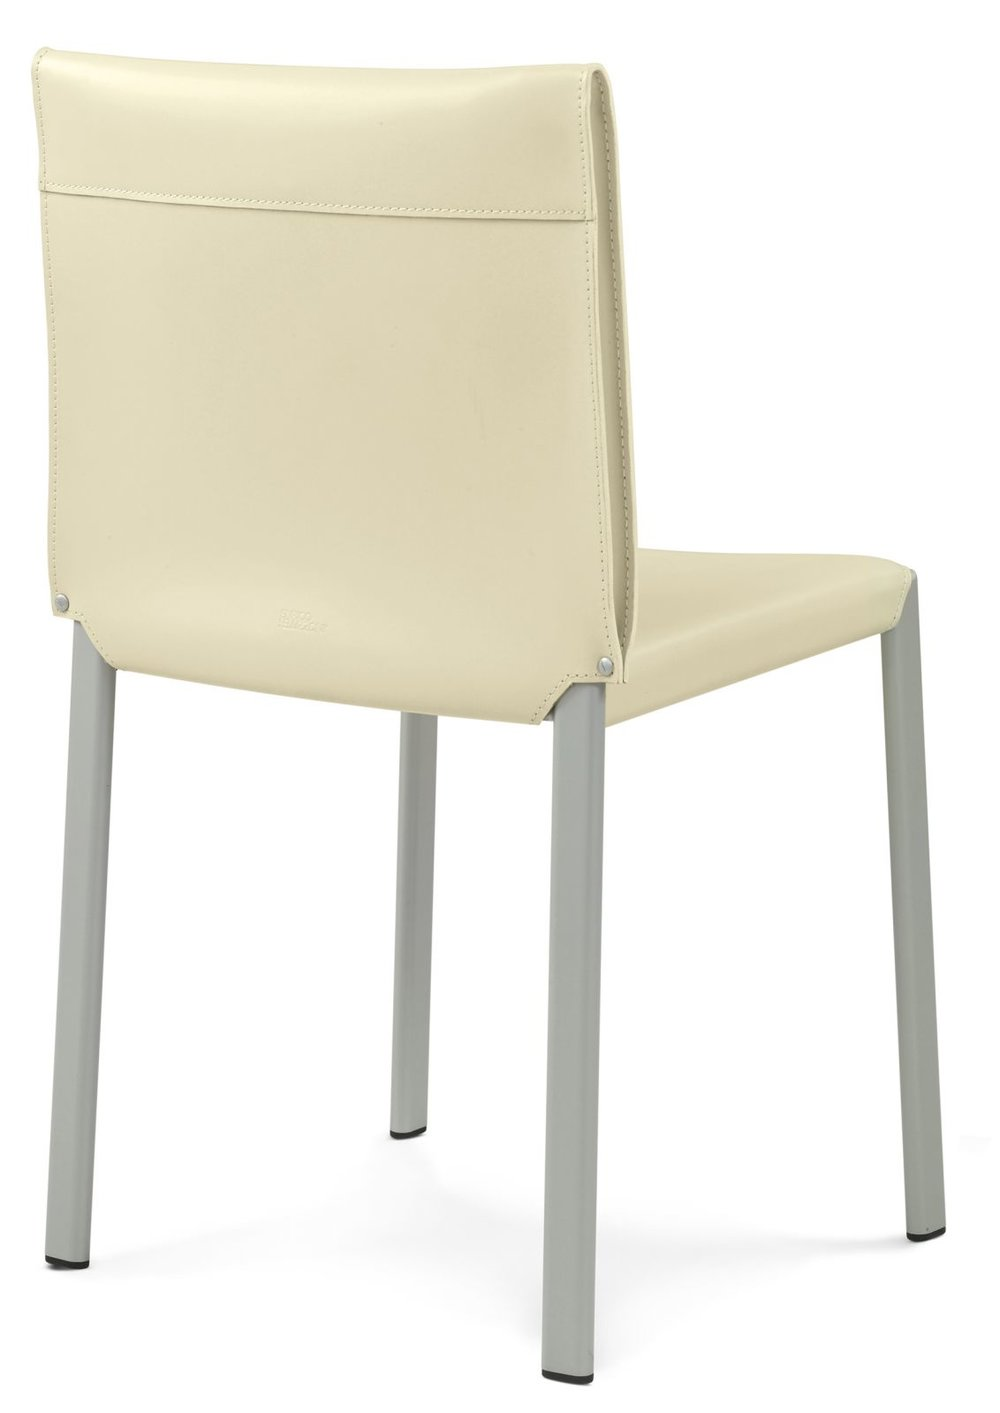 MOF 133 Modern Office Chair